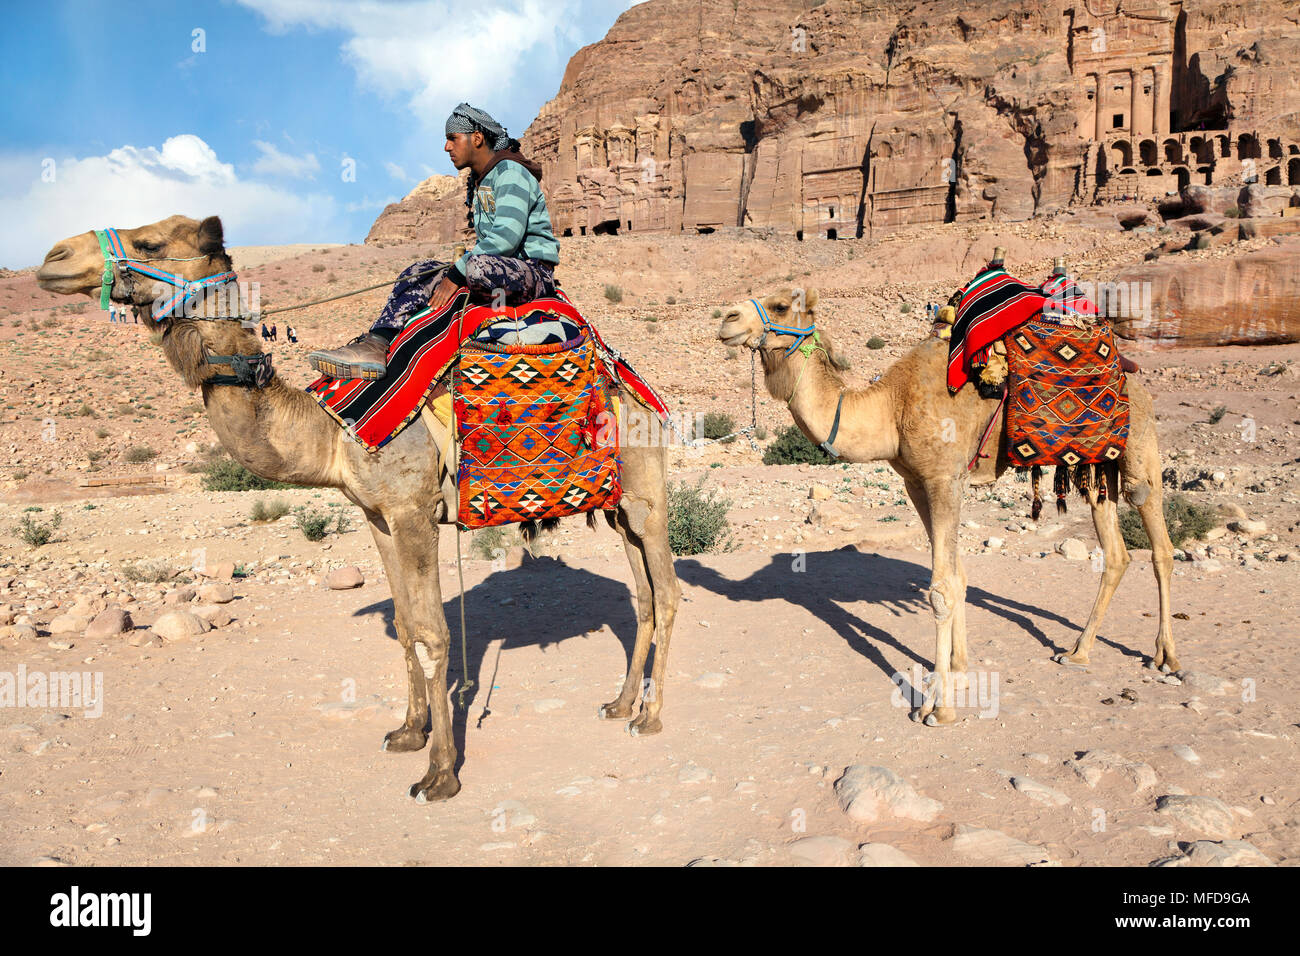 A camel driver riding a camel against the background of the ancient ruins of the city of Petra, Jordan - Stock Image